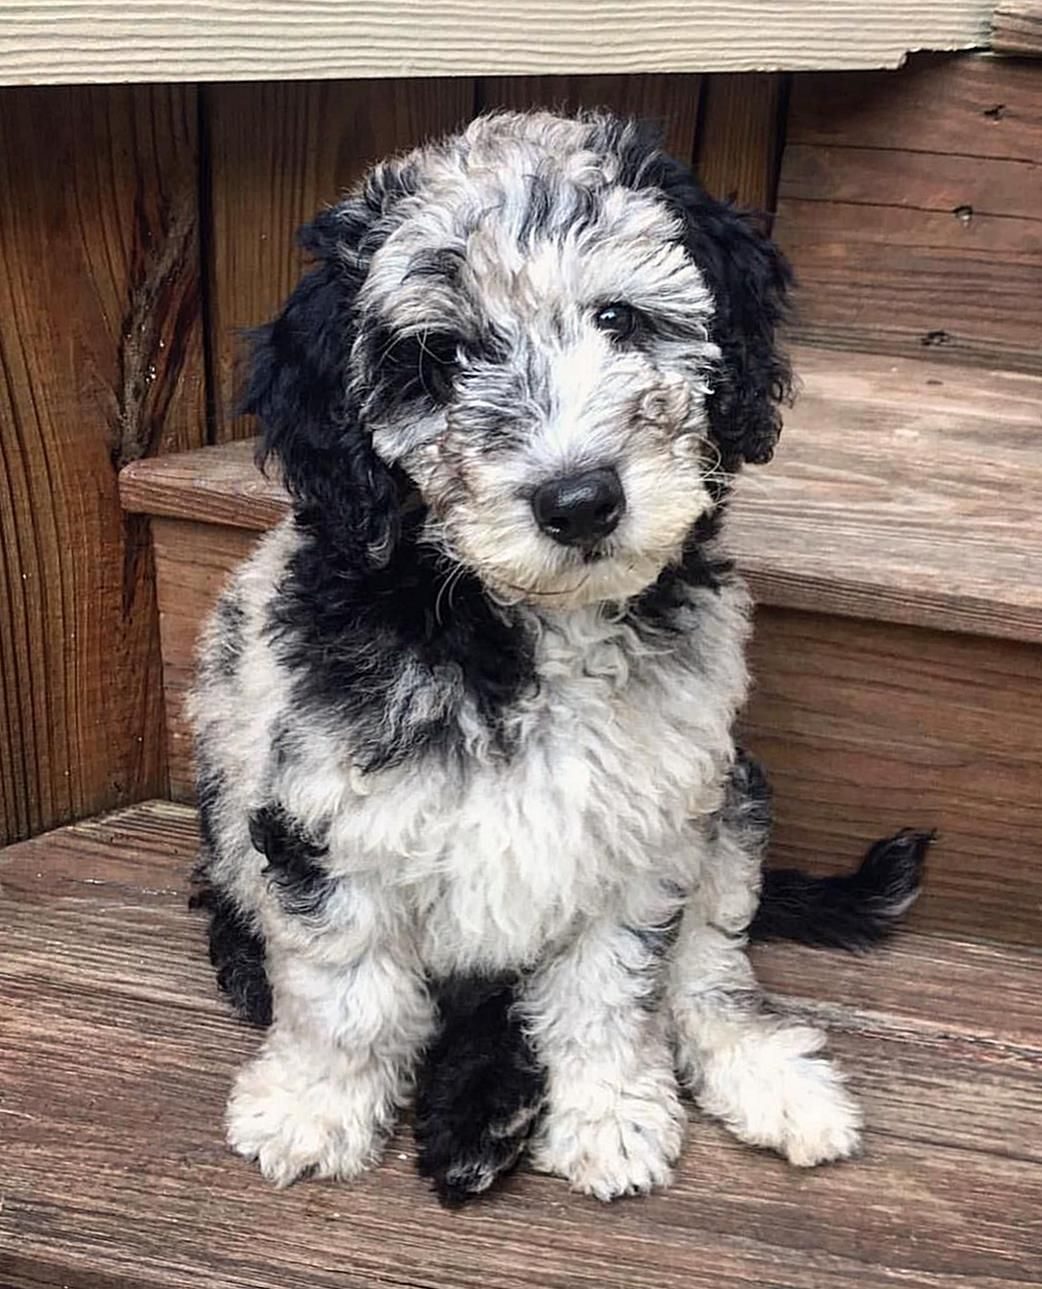 The Aussiedoodle Is The Superclever Hybrid Produced By Crossing The Poodle With The Australian Shepherd Both Parent Breeds In 2020 Pretty Dogs Aussiedoodle Dog Breeds